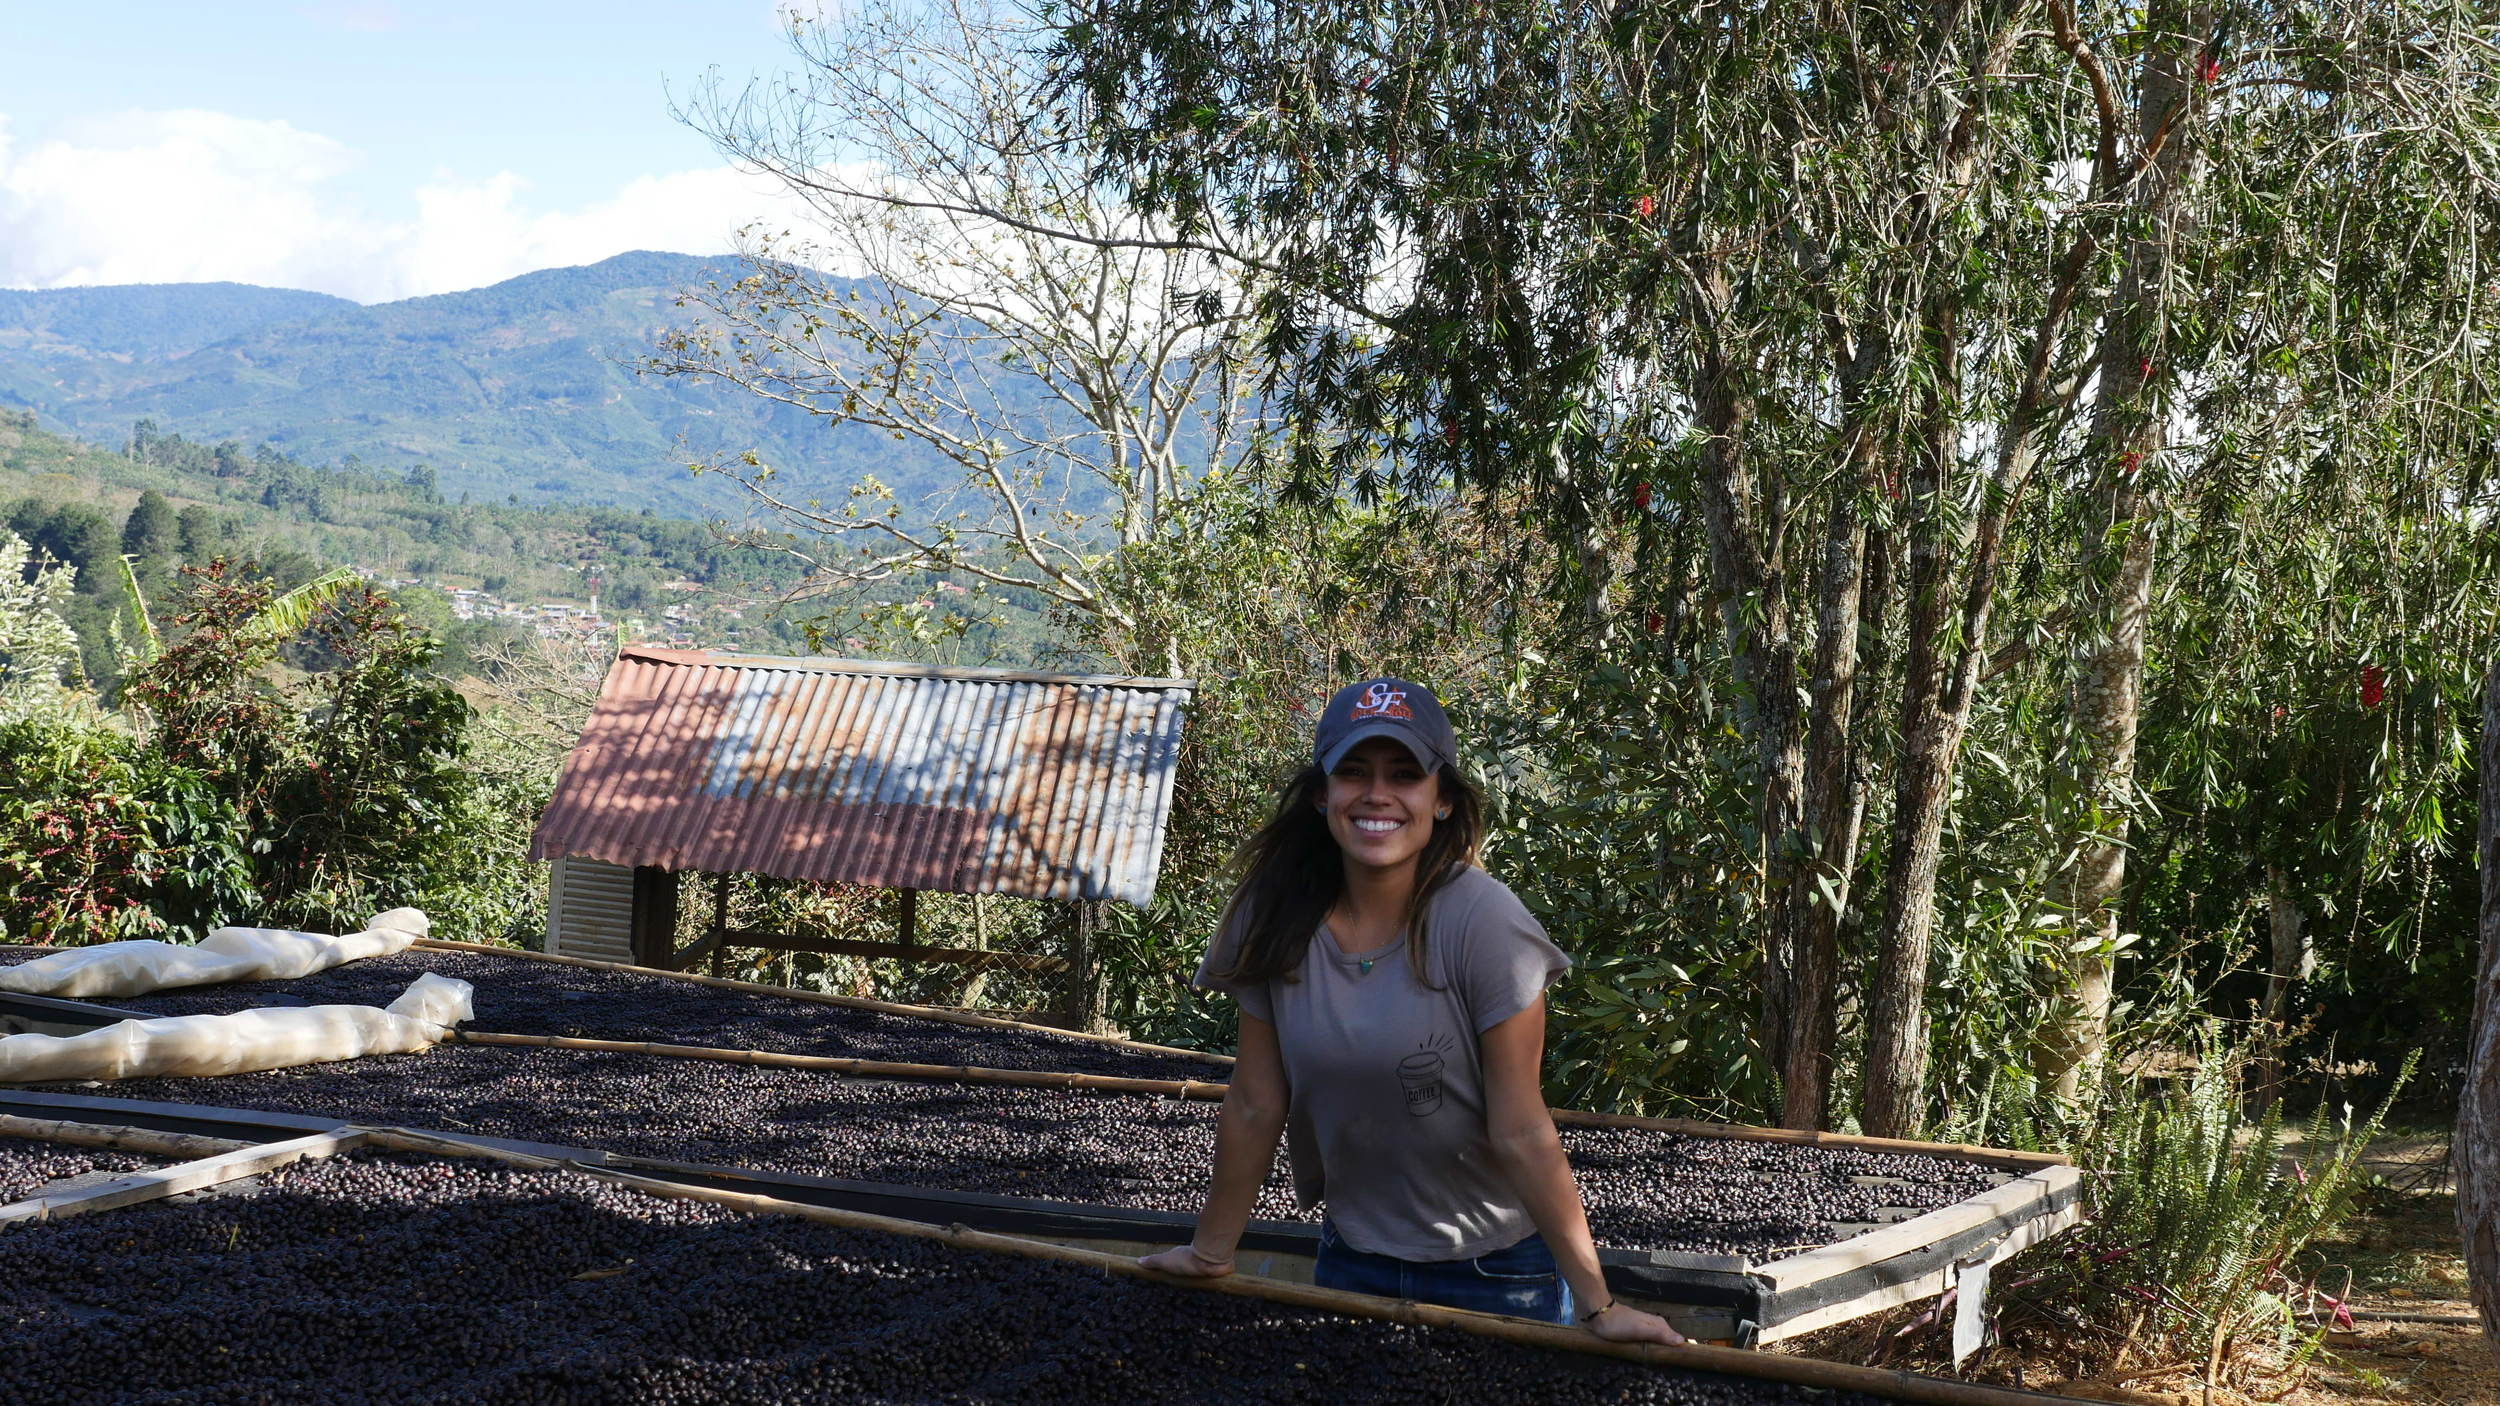 Here I am too stoked on this natural processed farm in Costa Rica